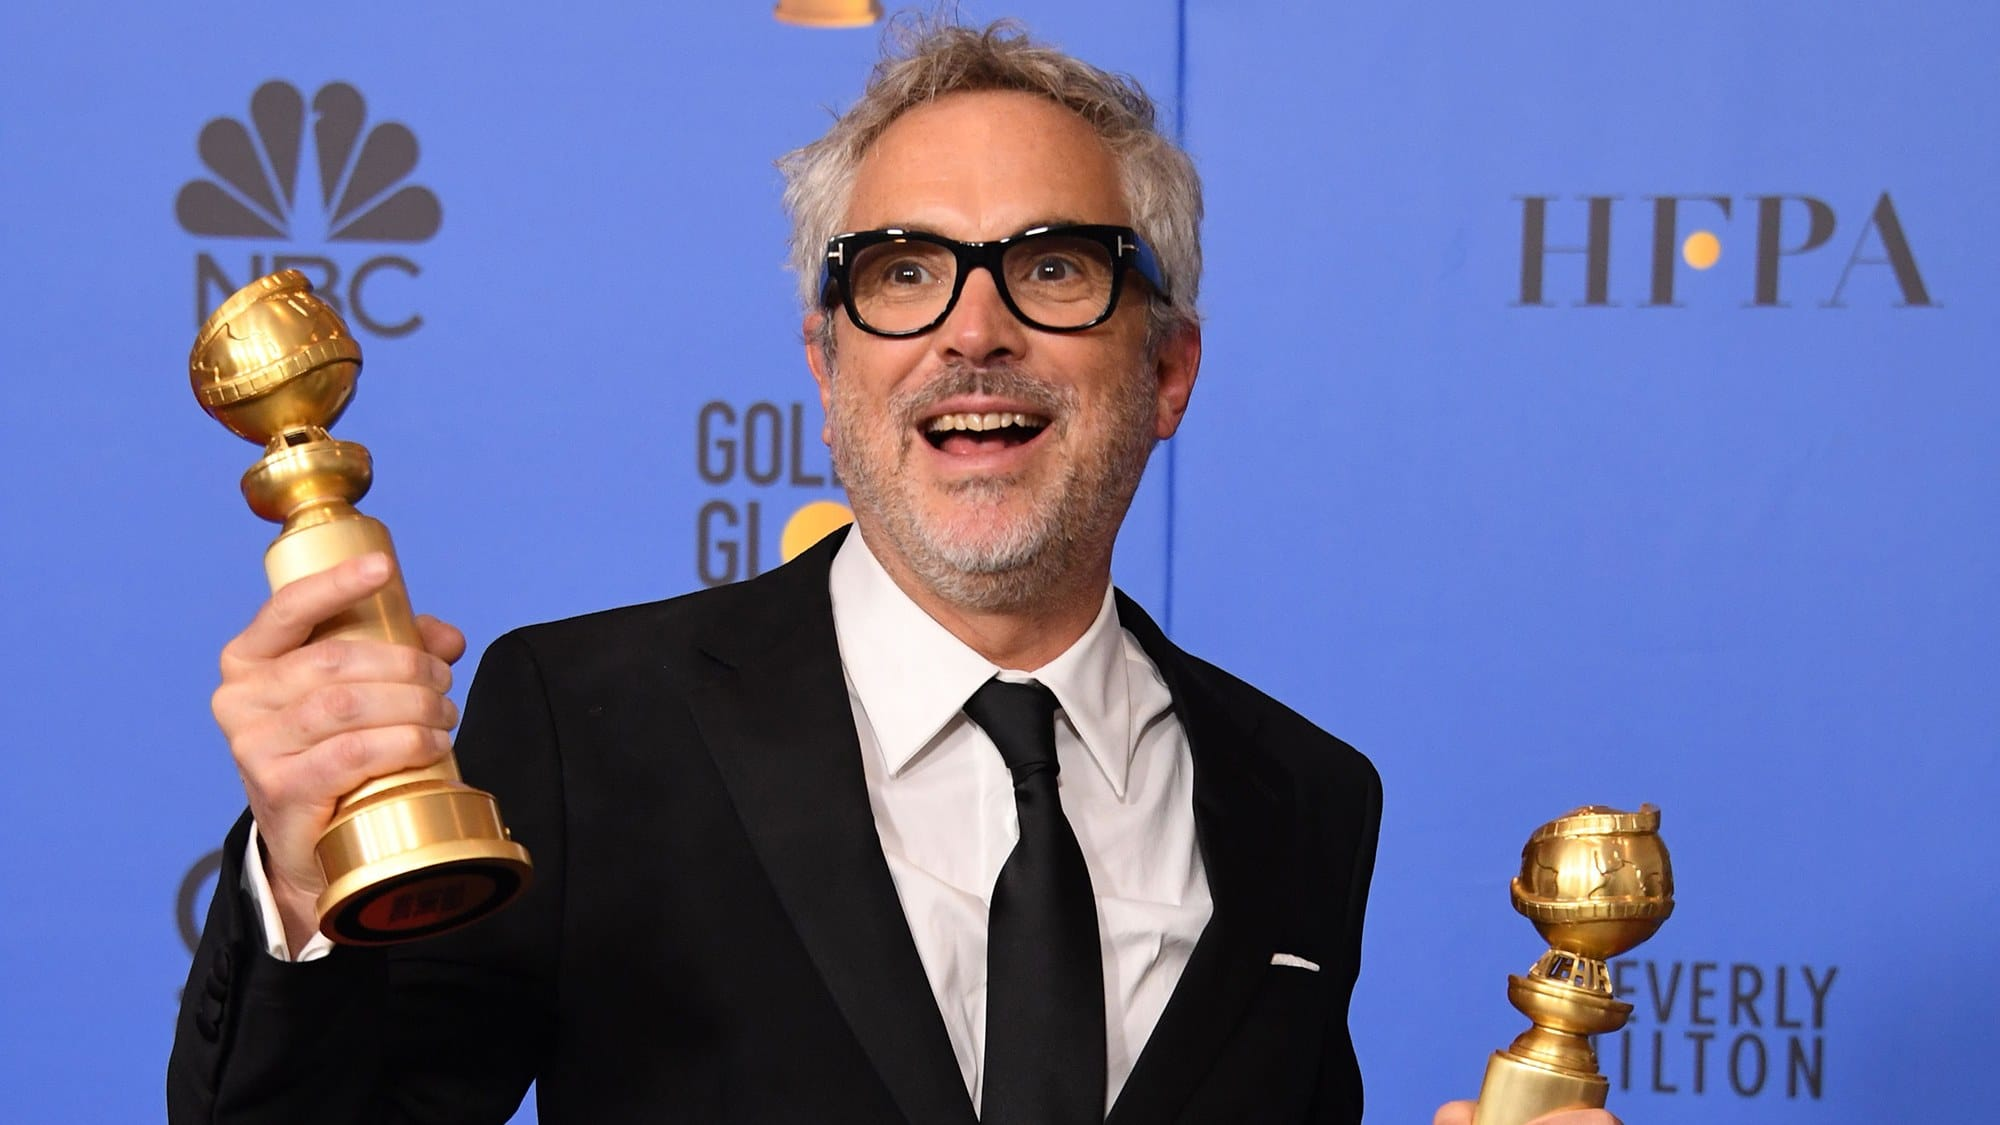 Alfonso Cuarón Mexican Film director, Screenwriter, Producer, Cinematographer and Editor